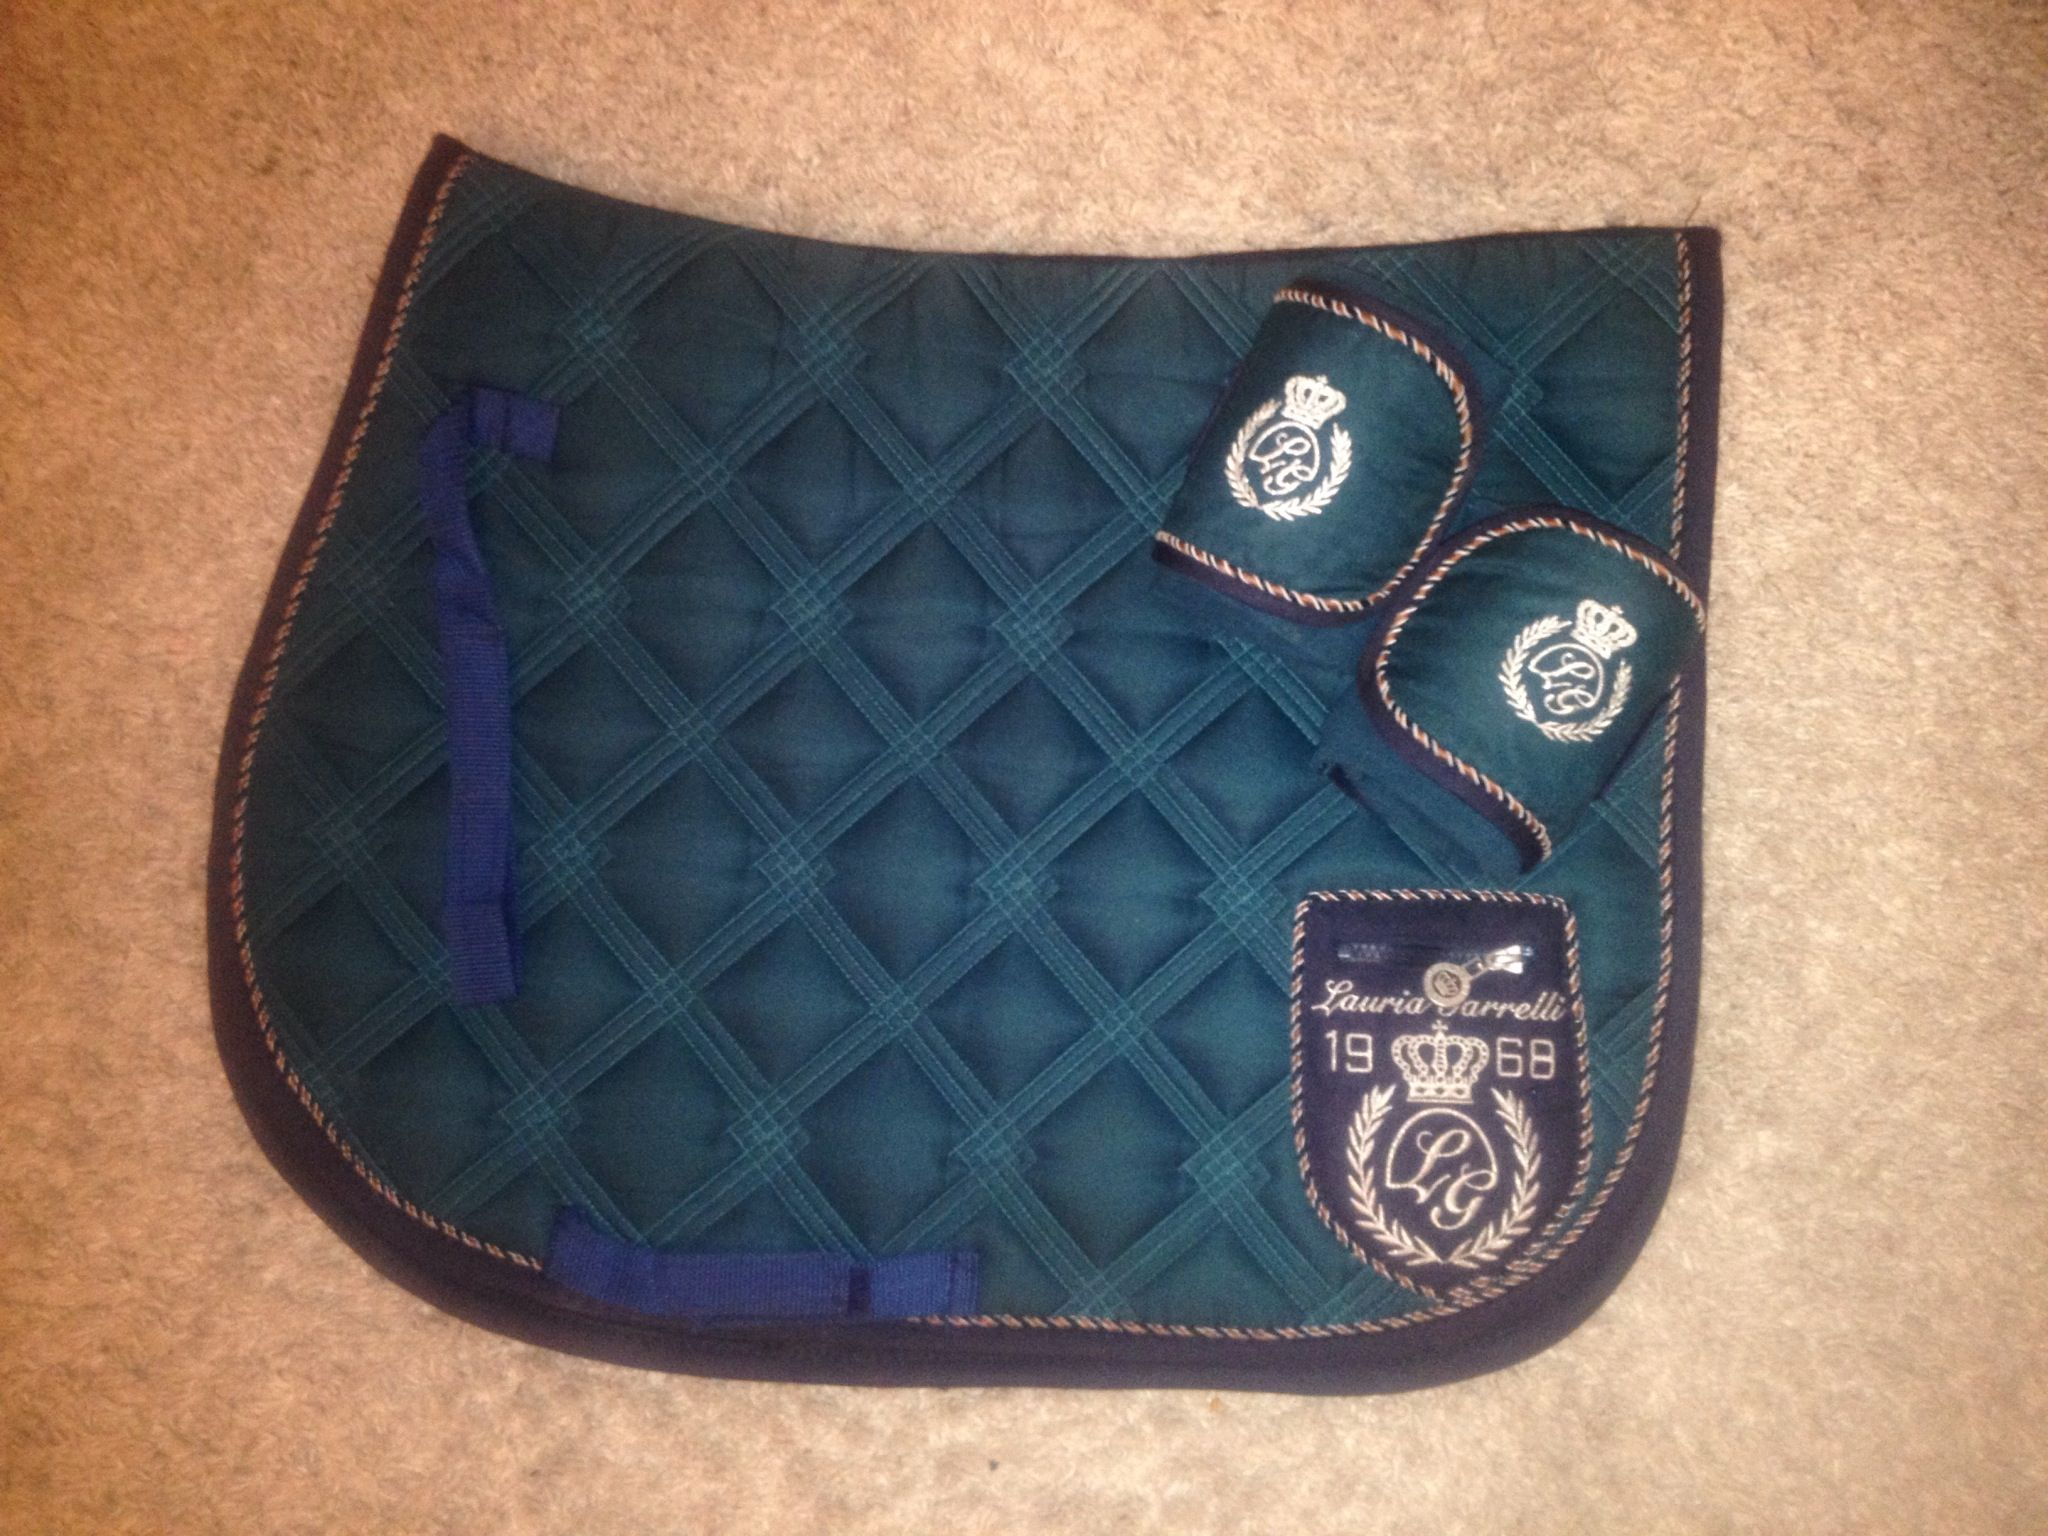 Lauria Garrelli Majestic petrol Saddle Pad + Bandages